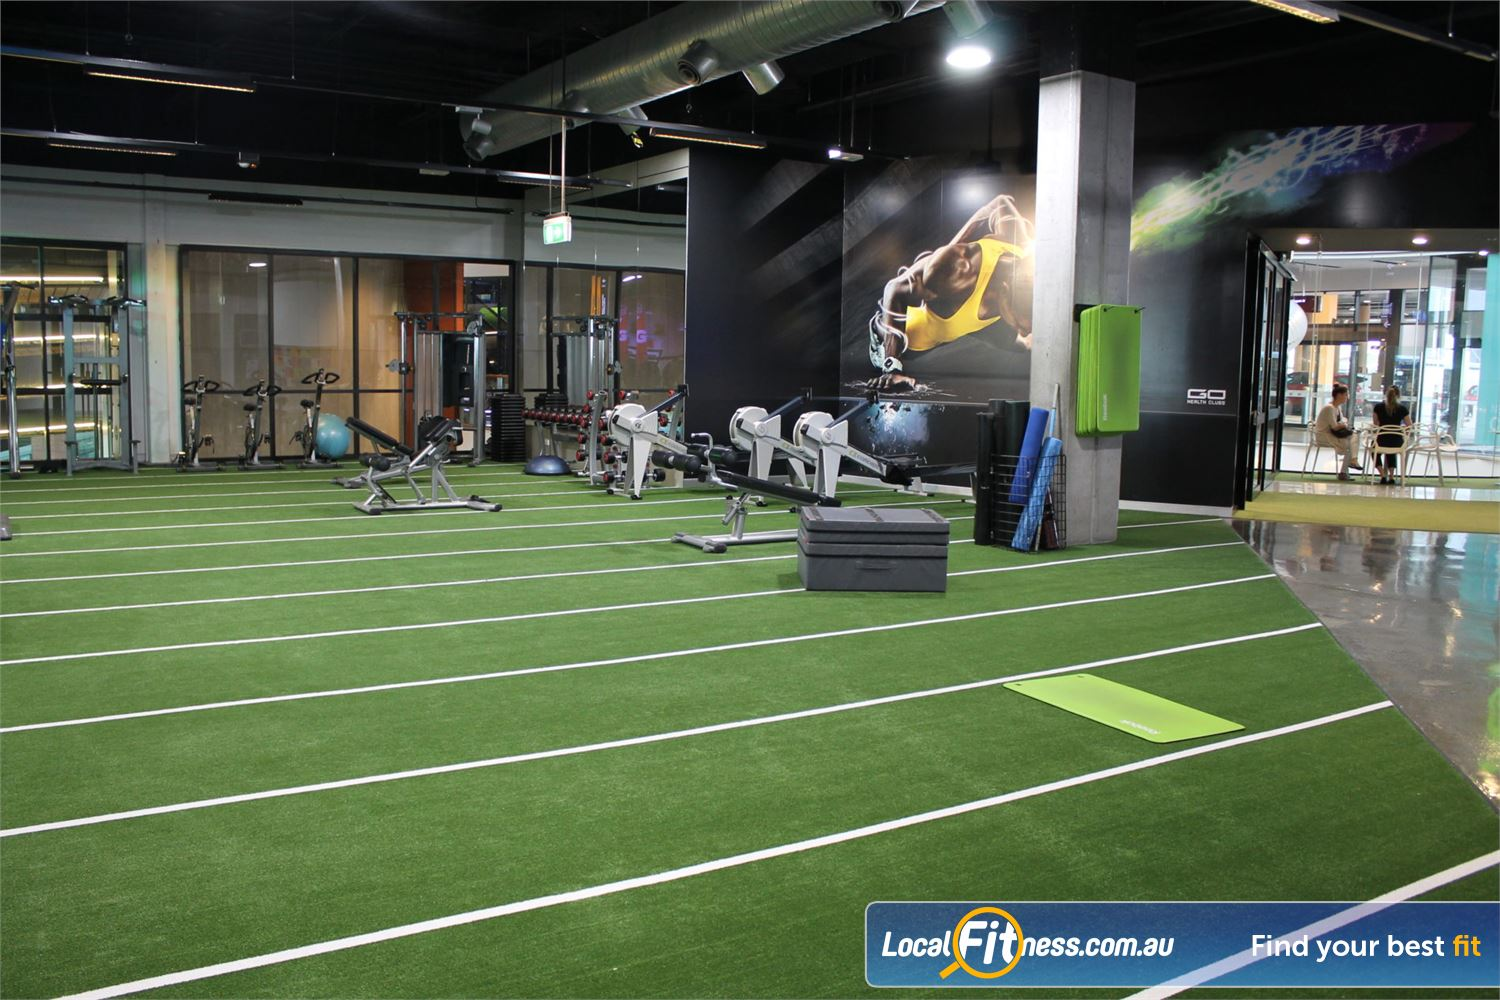 Goodlife Health Clubs Near Belmont Our Carindale gym provides 2000 sq/m of fitness under one roof.